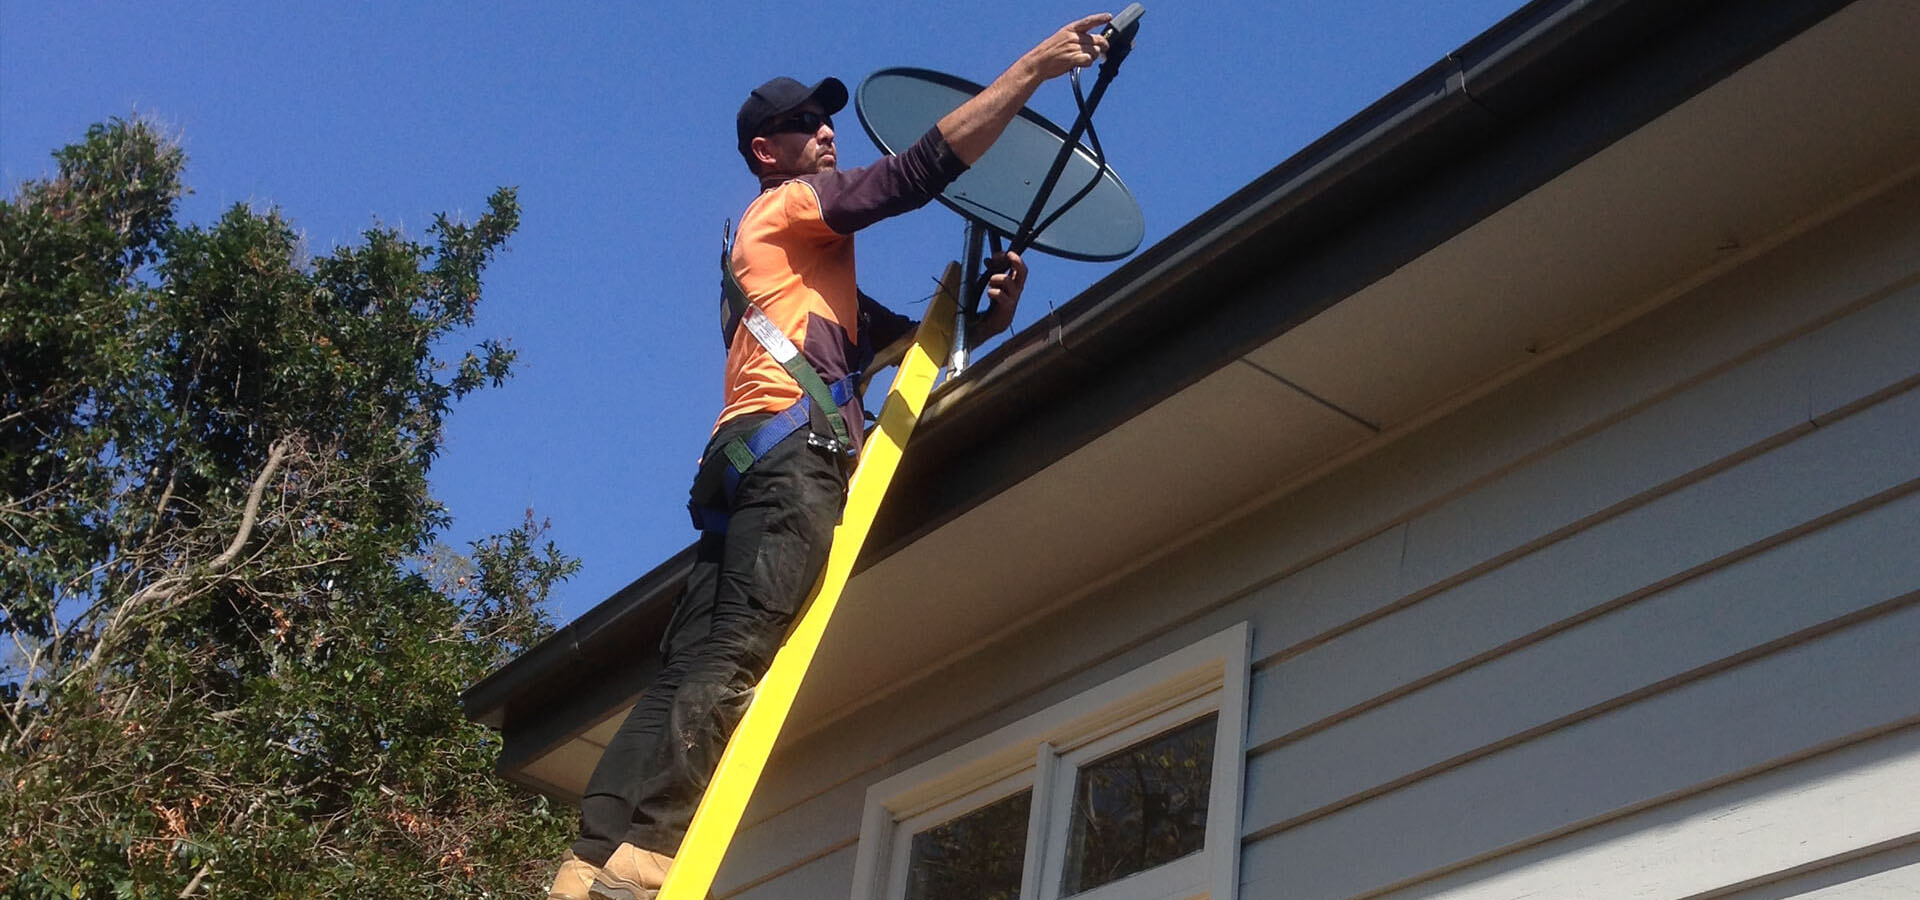 Installer using the Branach fibreglass CorrosionMaster Single Ladder to climb on a roof.